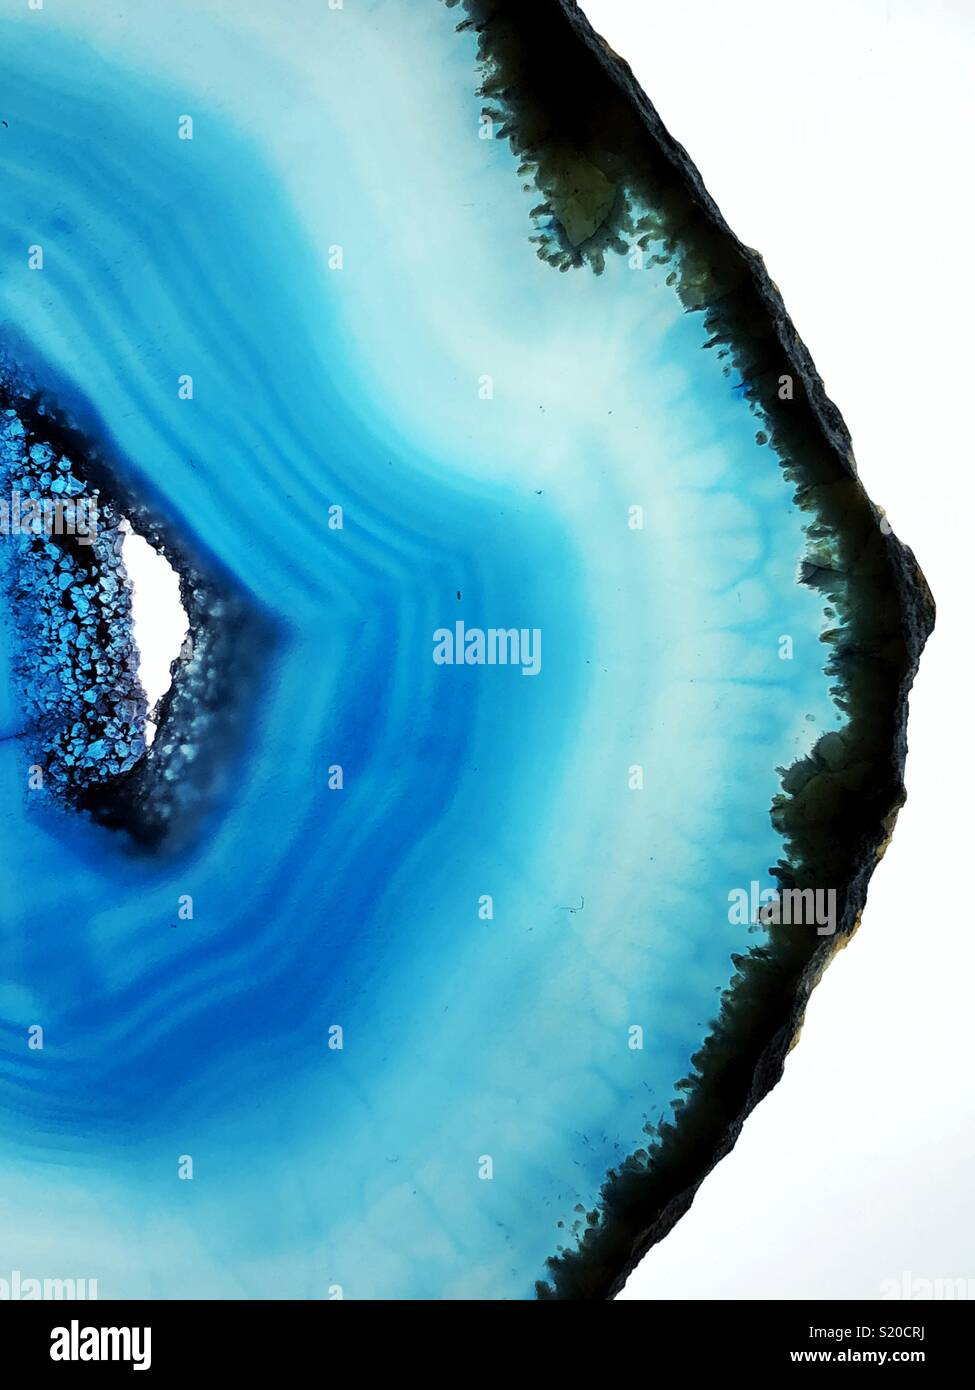 Closeup view of blue agate slice - Stock Image